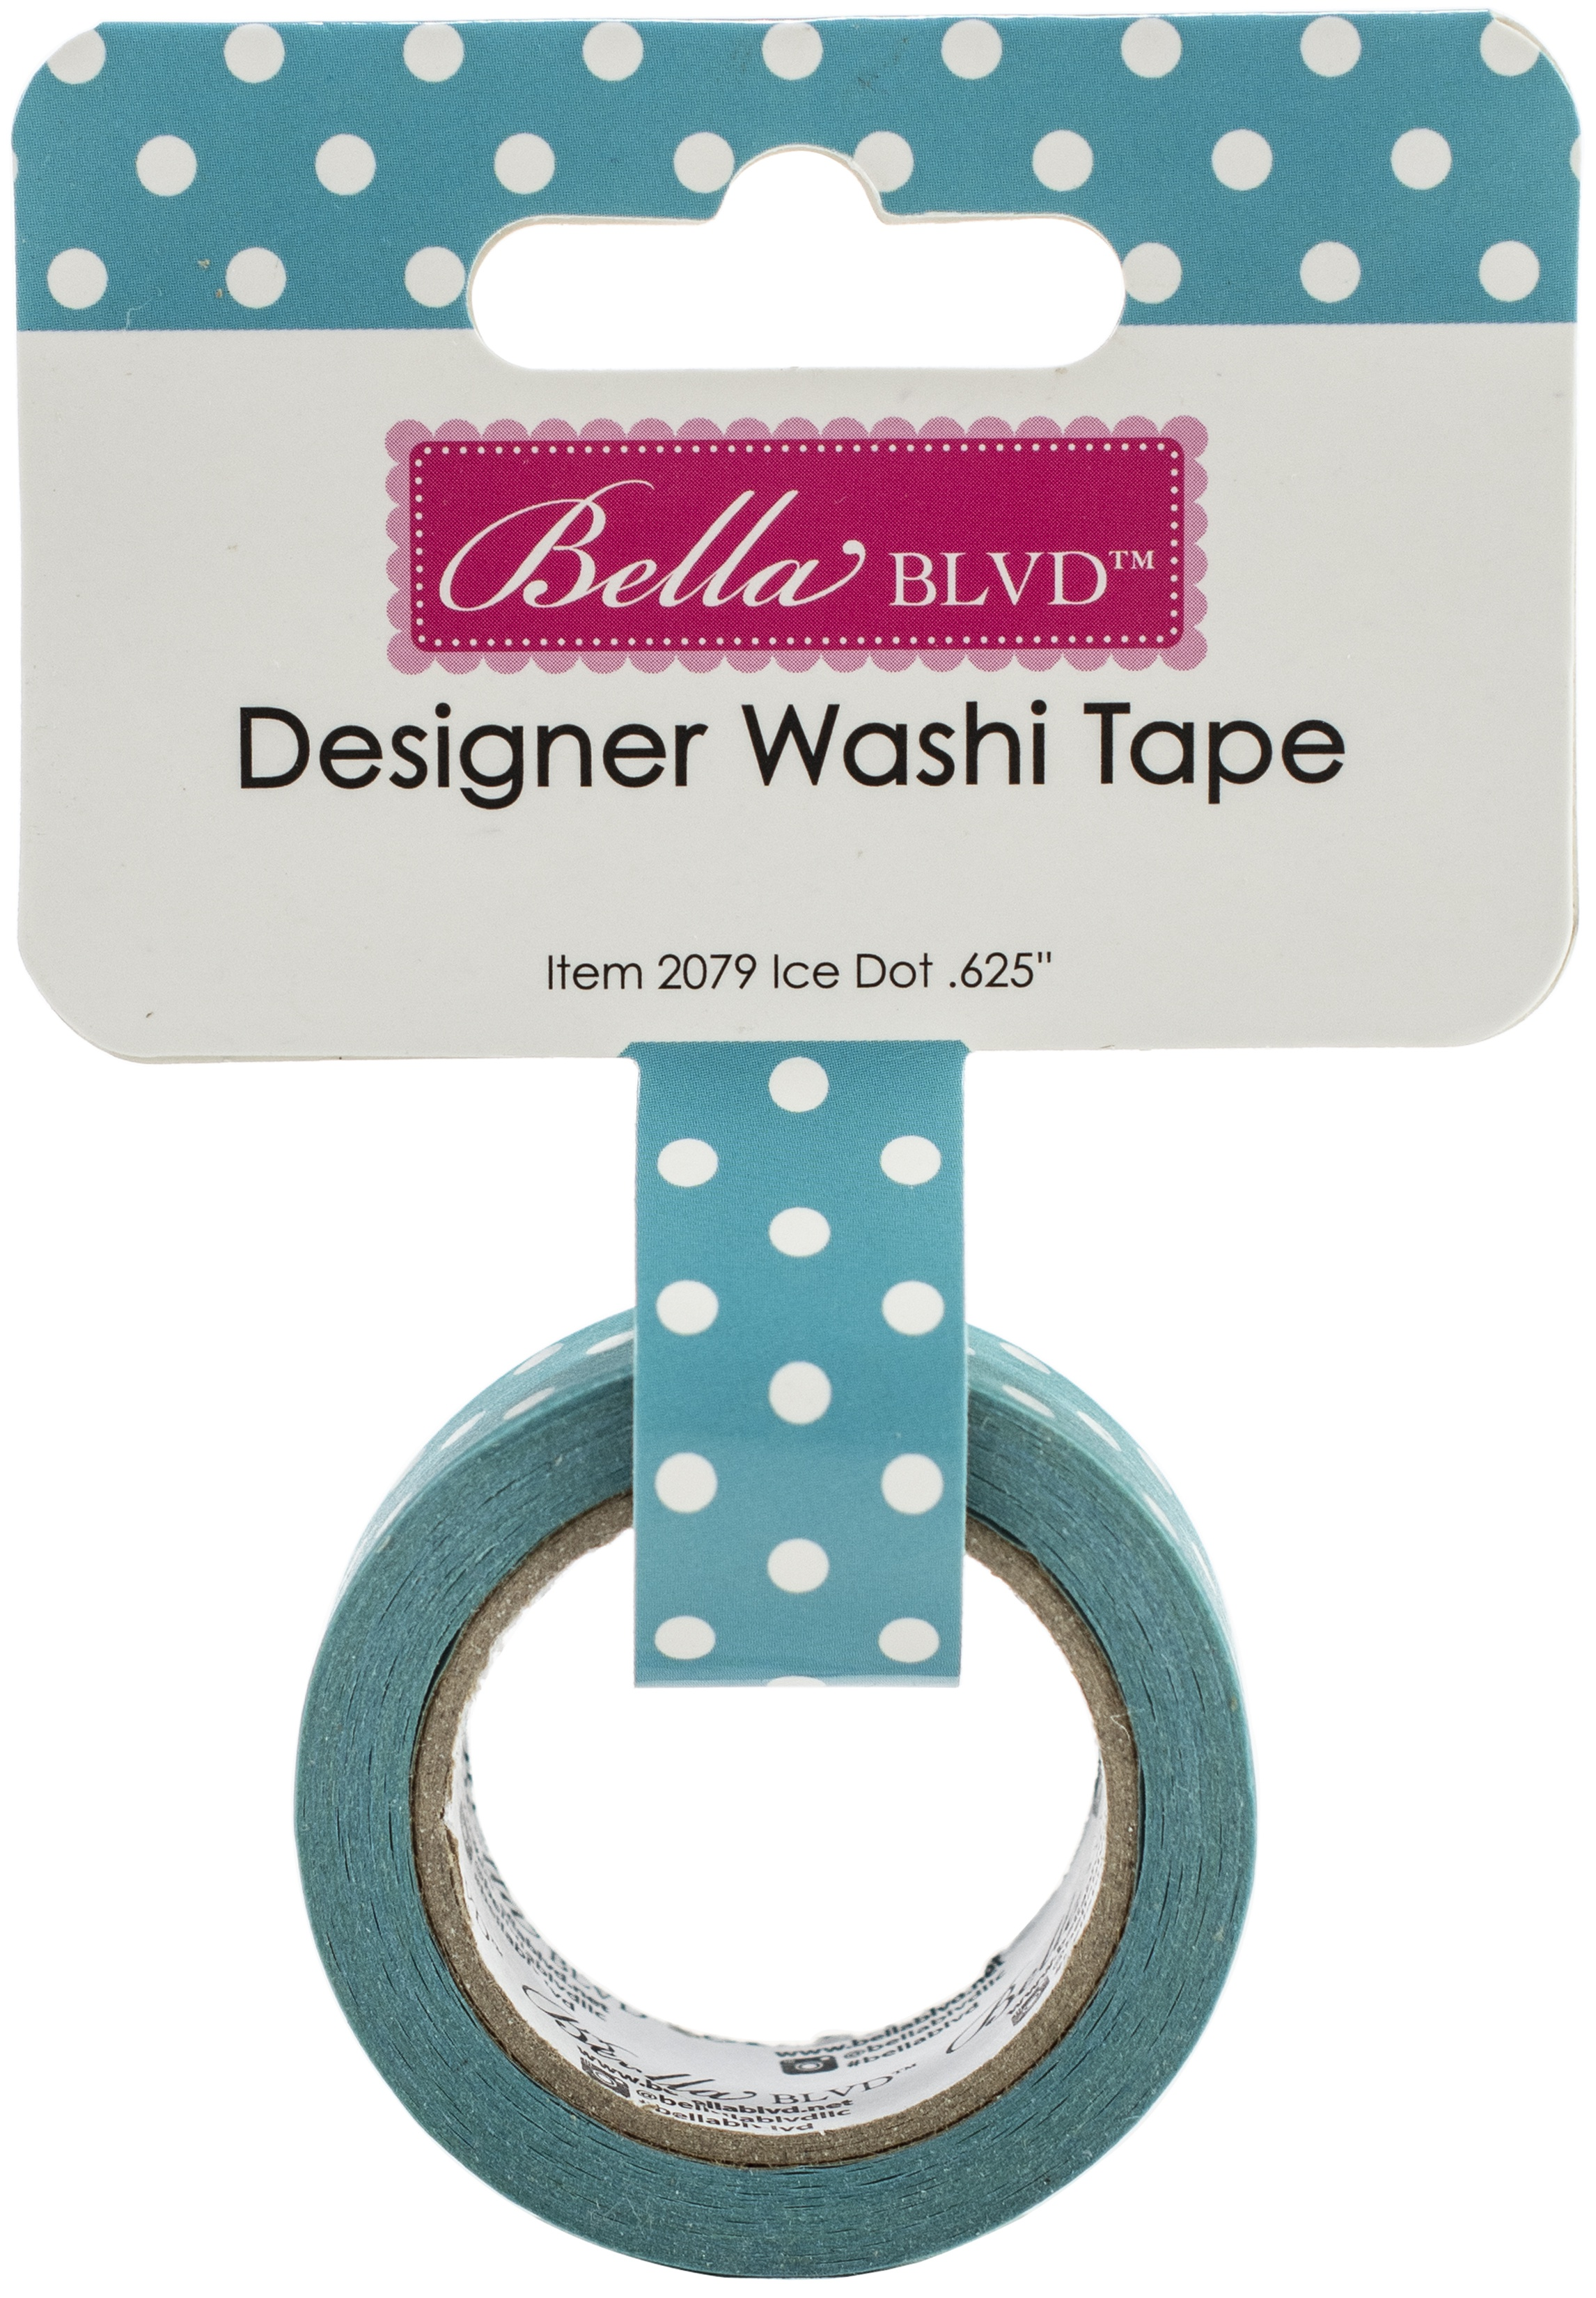 Bella Blvd - Splash Zone Designer Washi Tape - Ice Dot